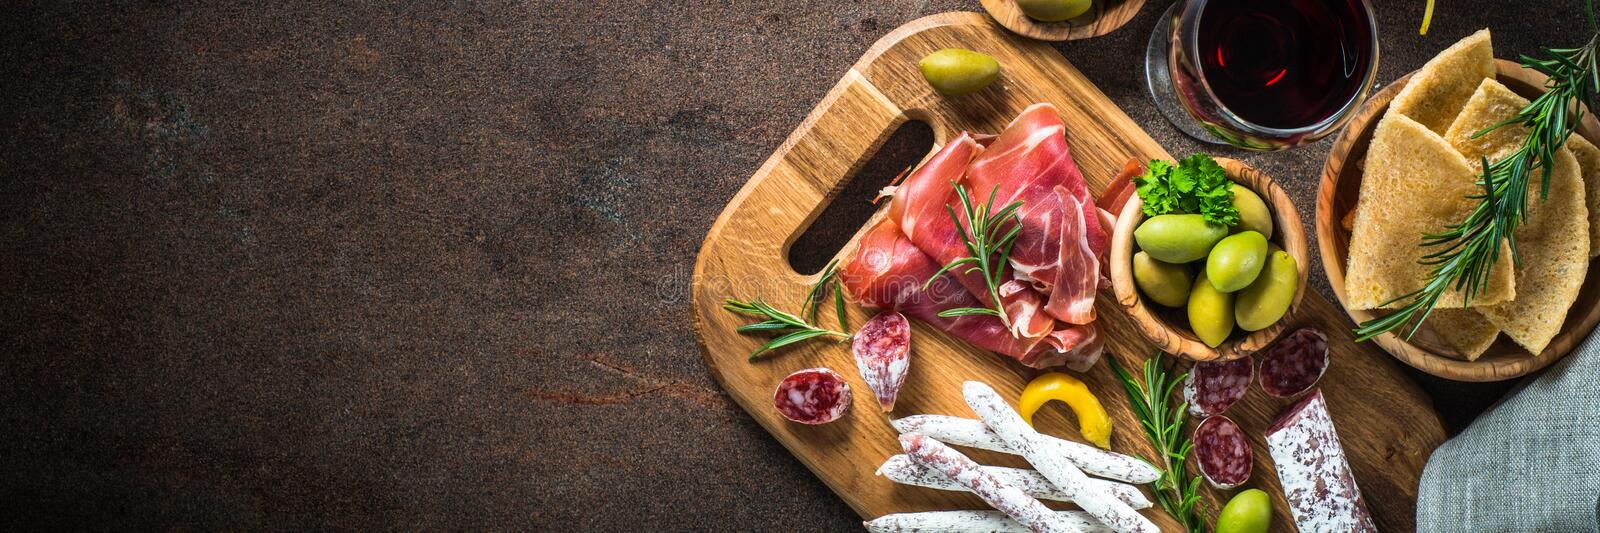 Antipasto - sliced meat, ham, salami, olives and wine top view. Antipasto - sliced meat, ham, salami, olives and glass wine on dark stone table. Top view long royalty free stock image